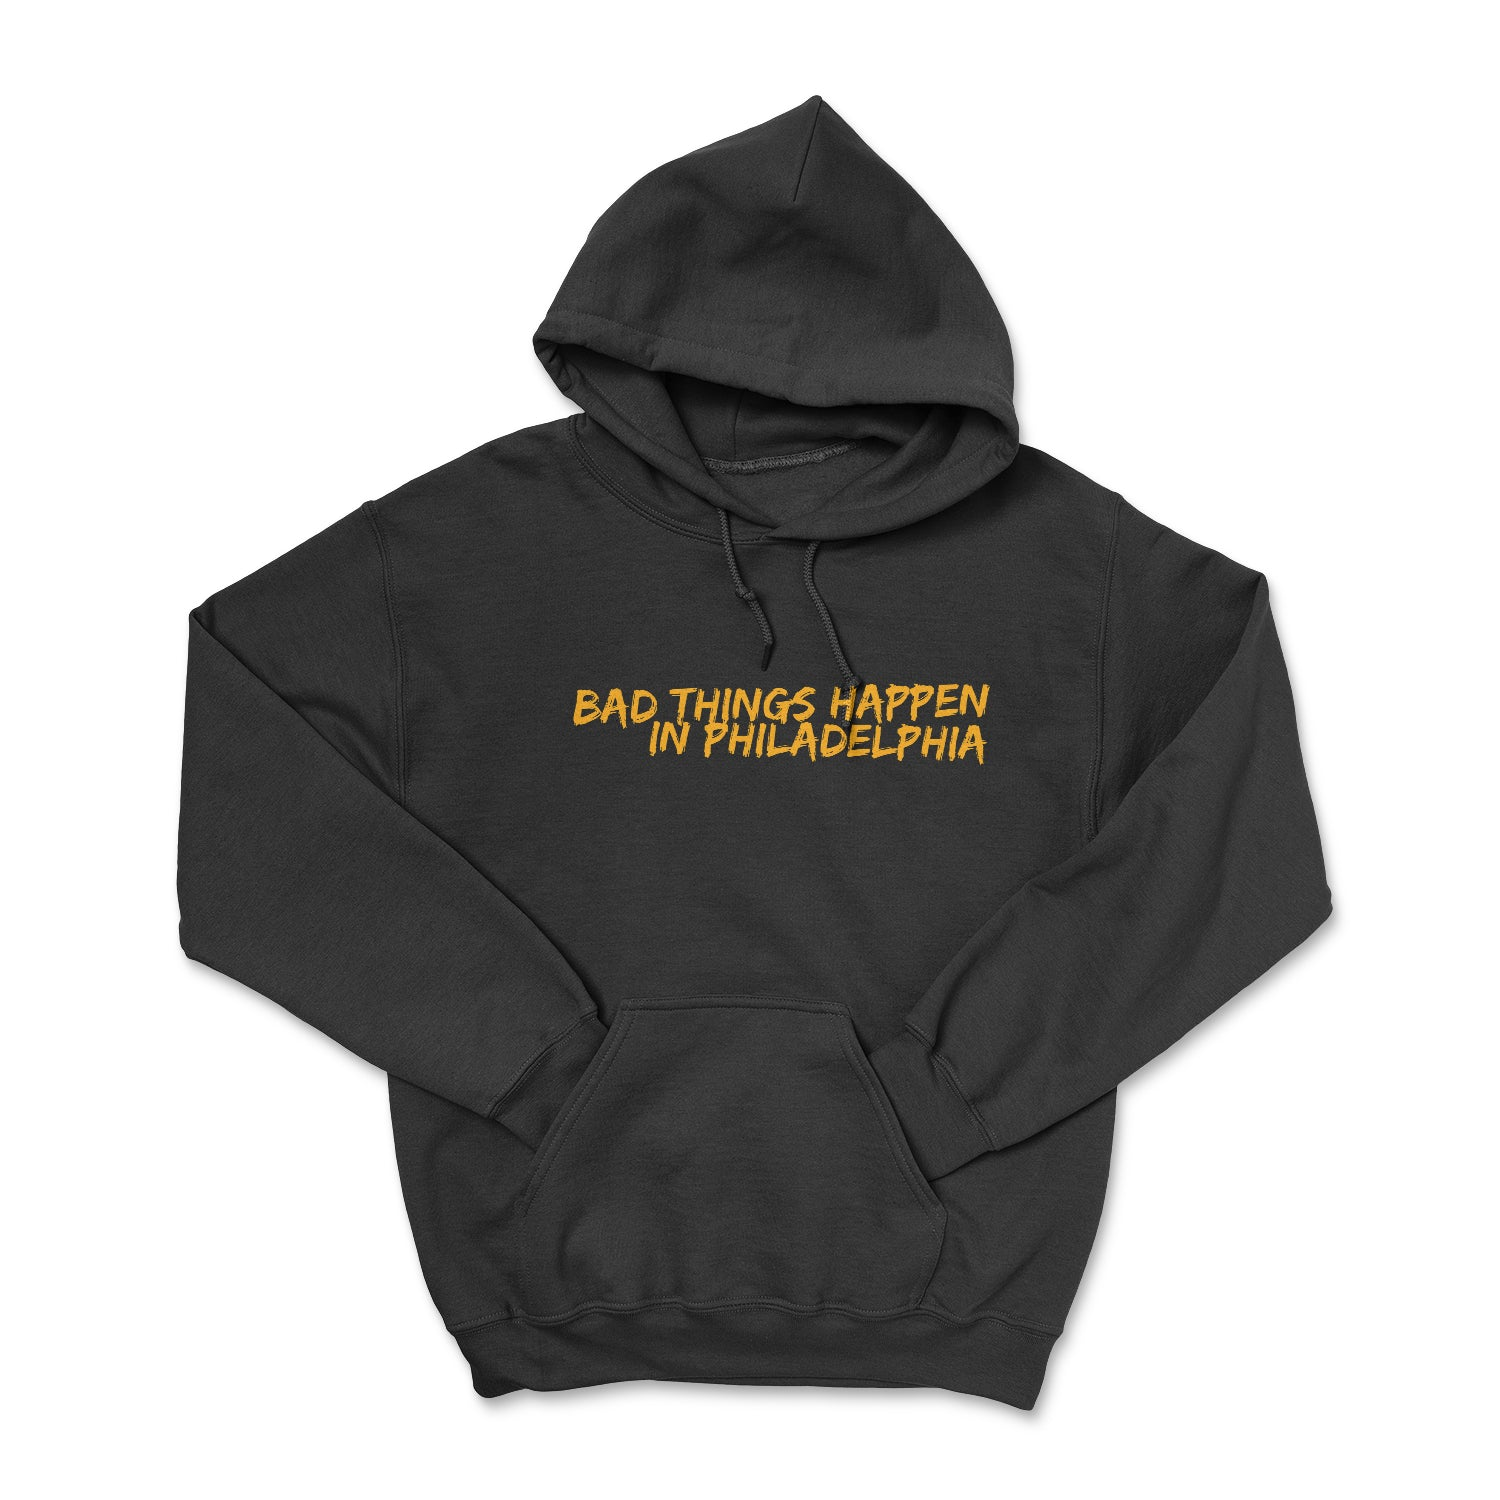 Bad Things Happen in Philadelphia Unisex Heavy Blend™ Hooded Sweatshirt